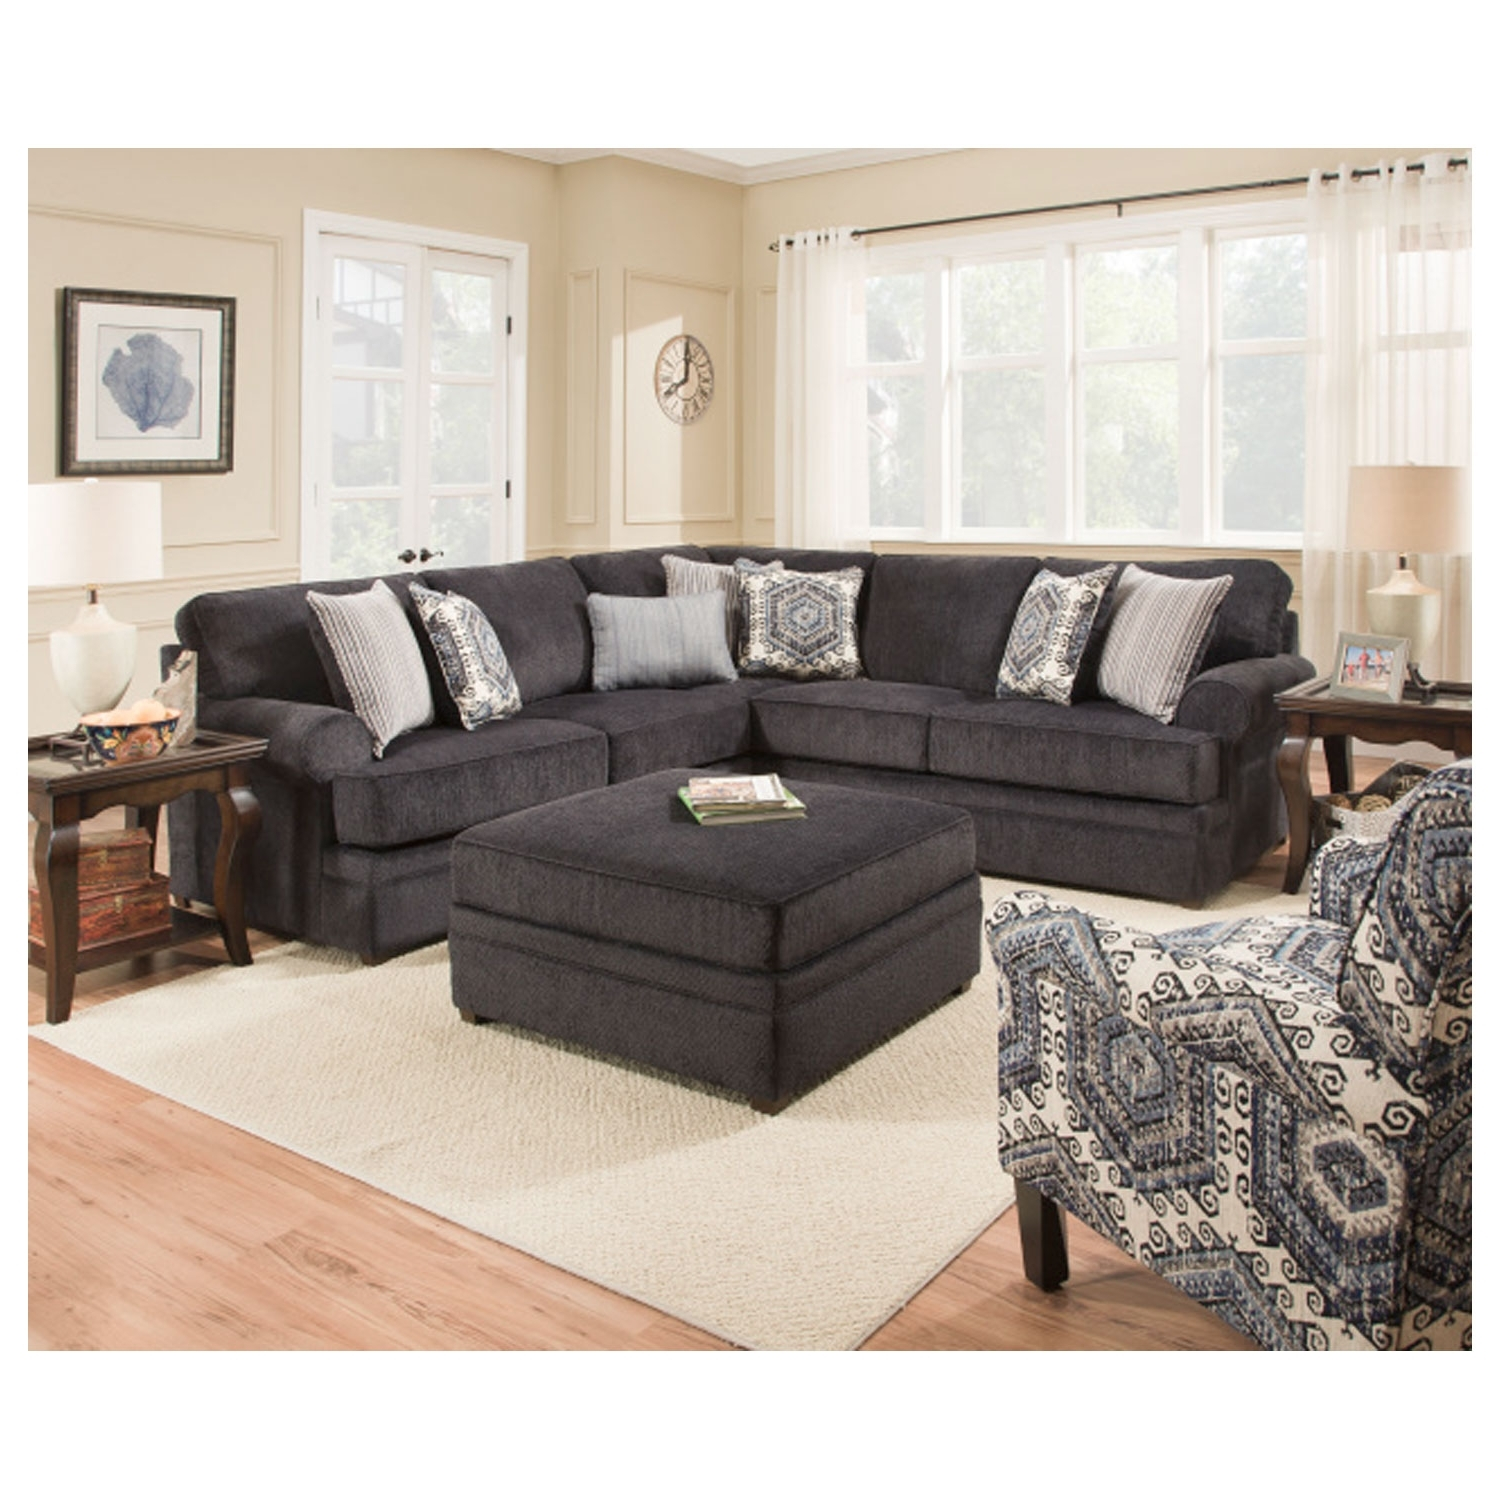 Simmons Sectional Sofas Pertaining To Well Known Simmons 8530Br Sectional Sofa Bellamy Slate (View 9 of 15)